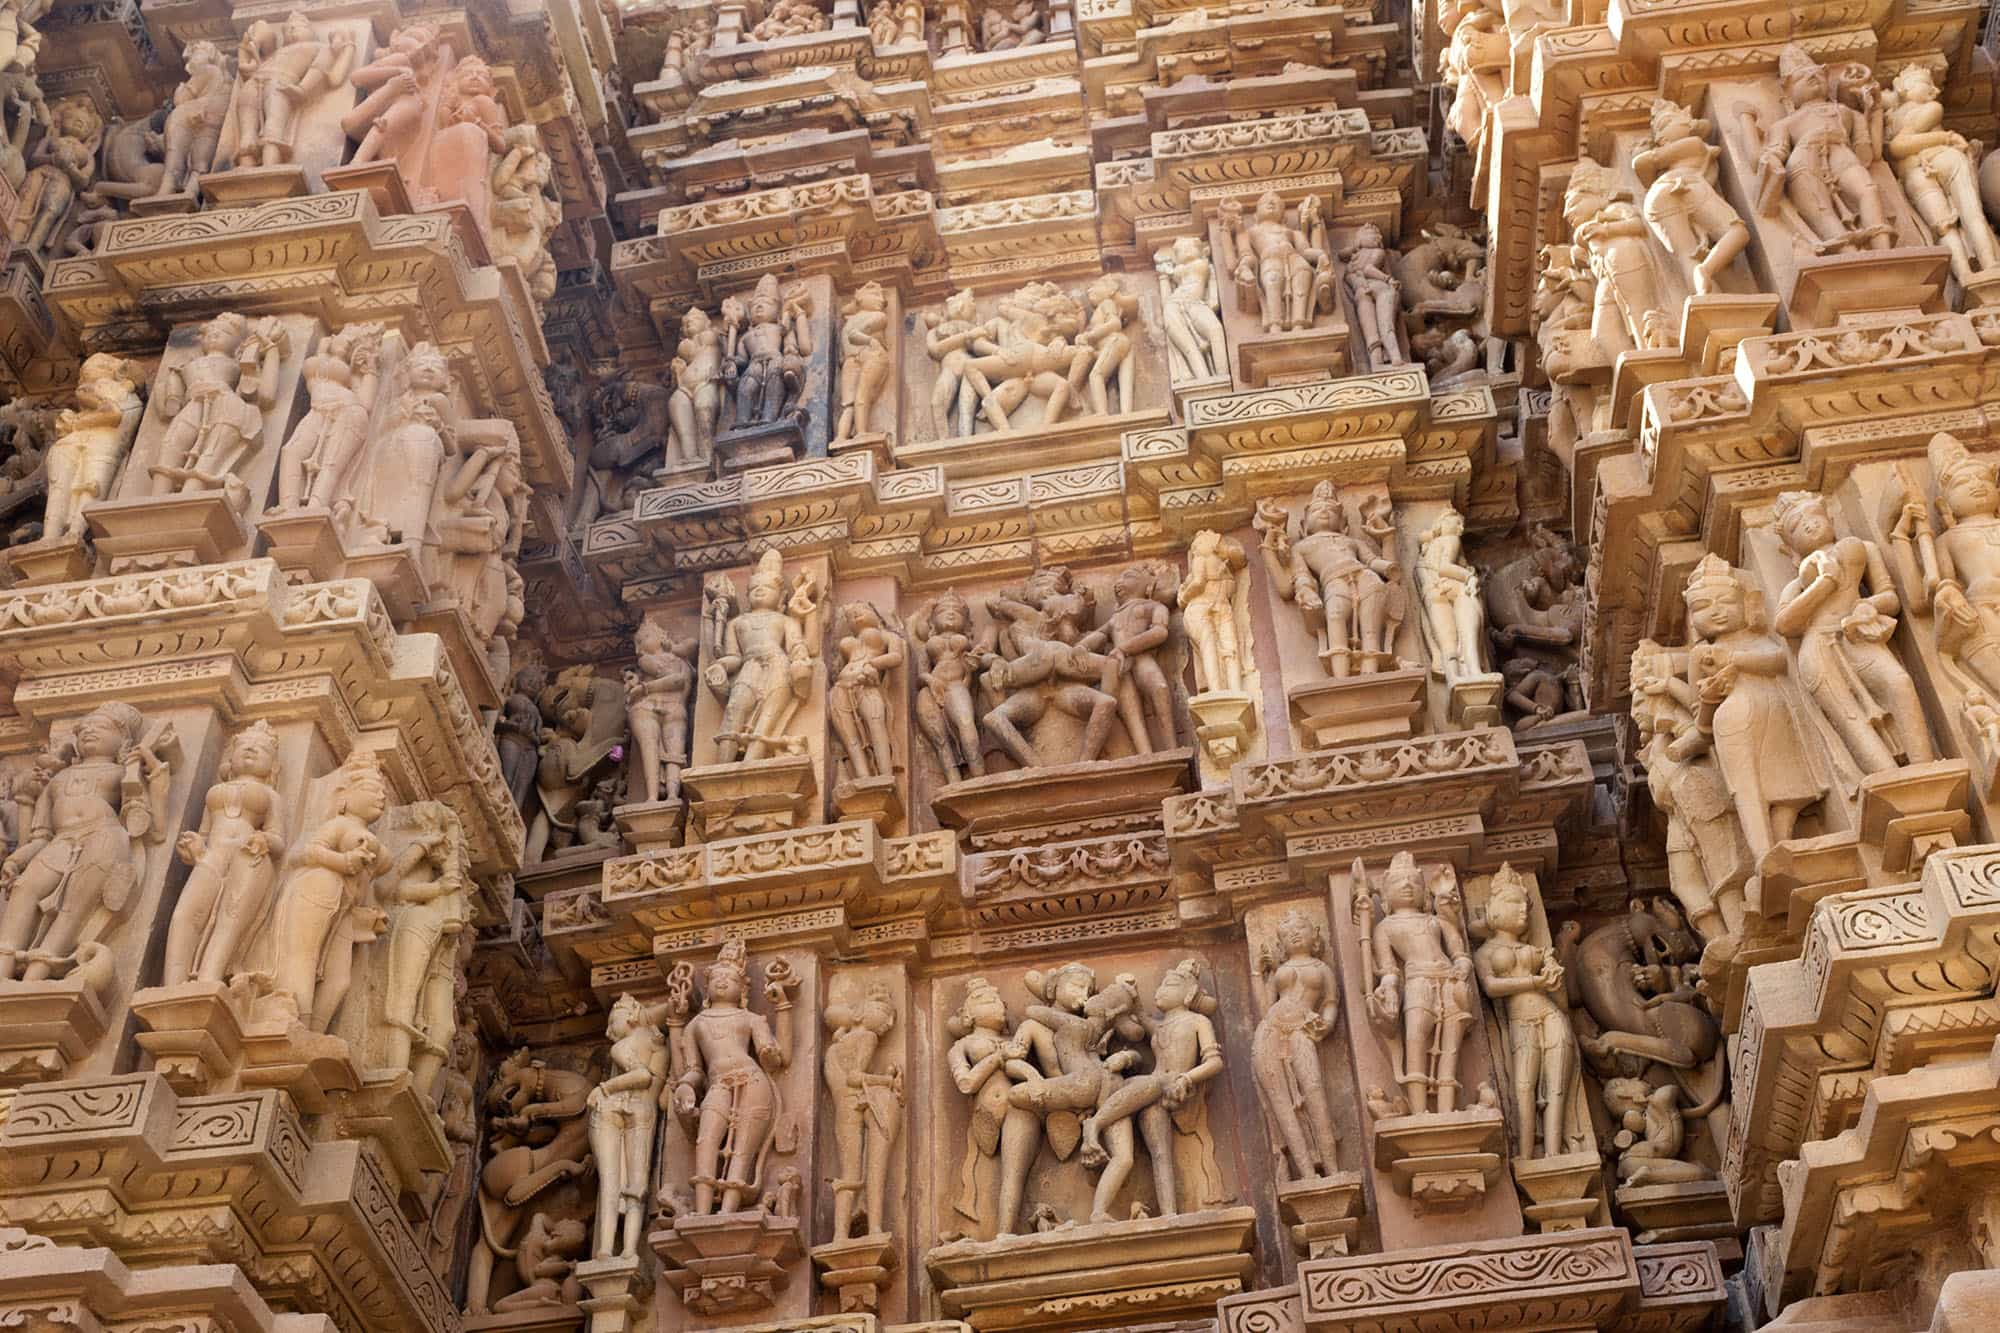 Western Group sex temples in Khajuraho, India.